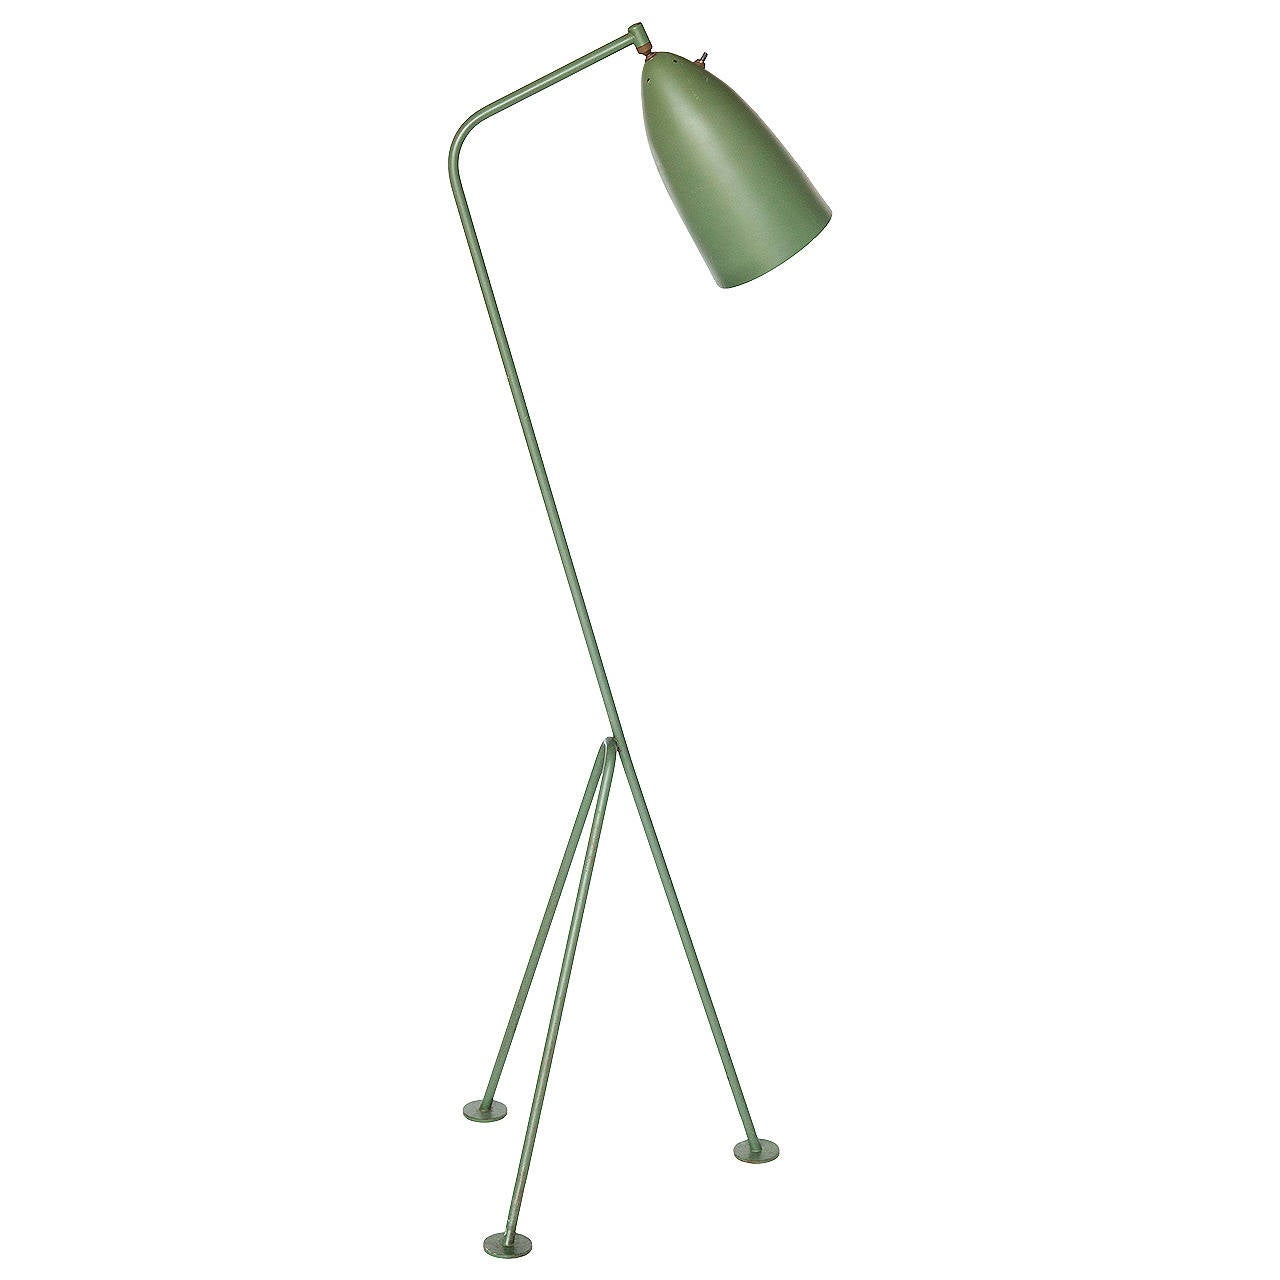 grasshopper floor lamp by greta grossman for sale at 1stdibs. Black Bedroom Furniture Sets. Home Design Ideas